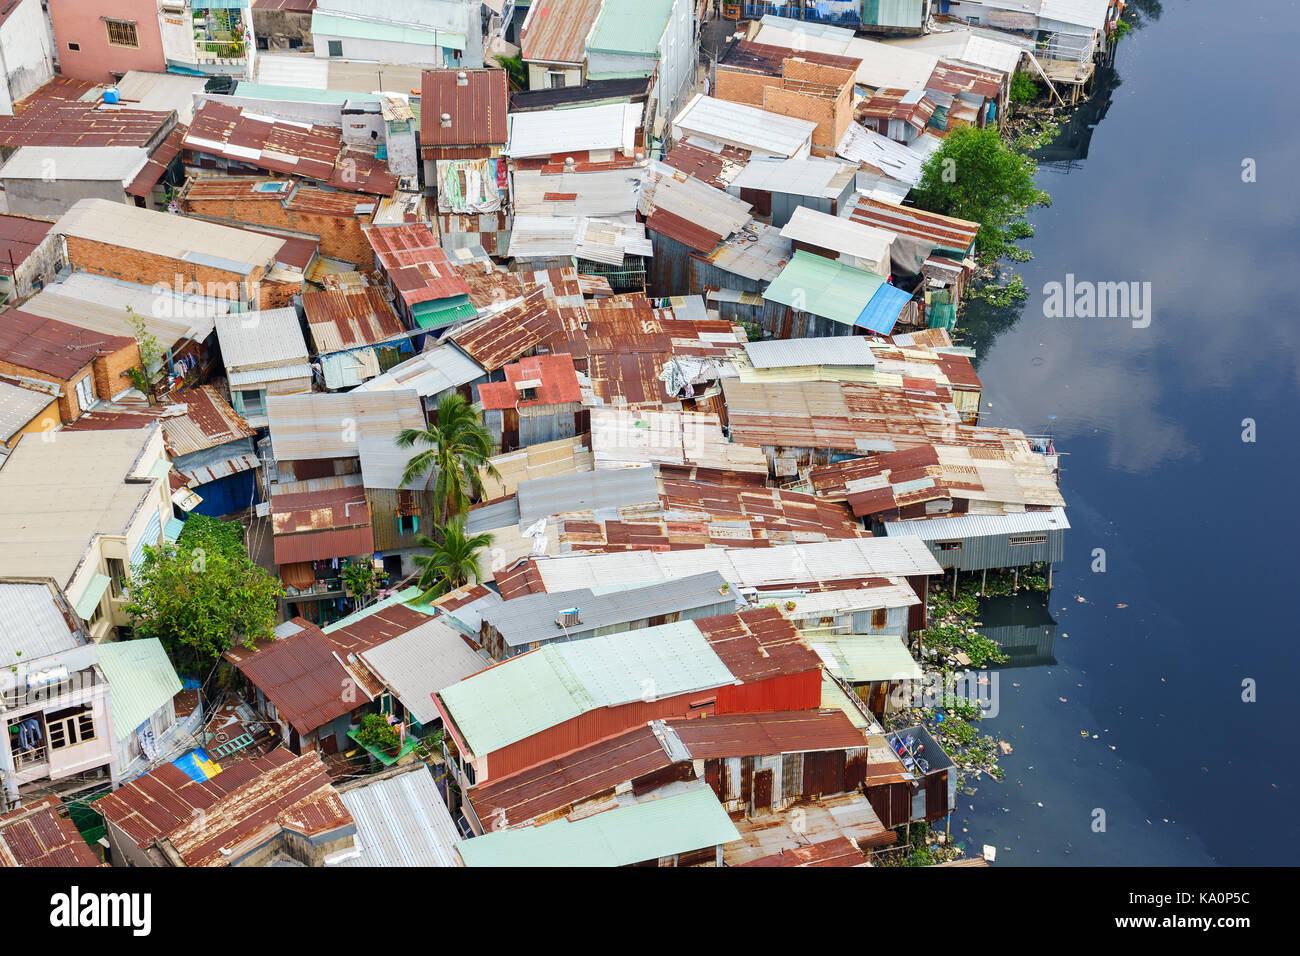 Colorful slum houses at Ho Chi Minh city (view from top), Vietnam. Ho Chi Minh city (aka Saigon) is the largest - Stock Image